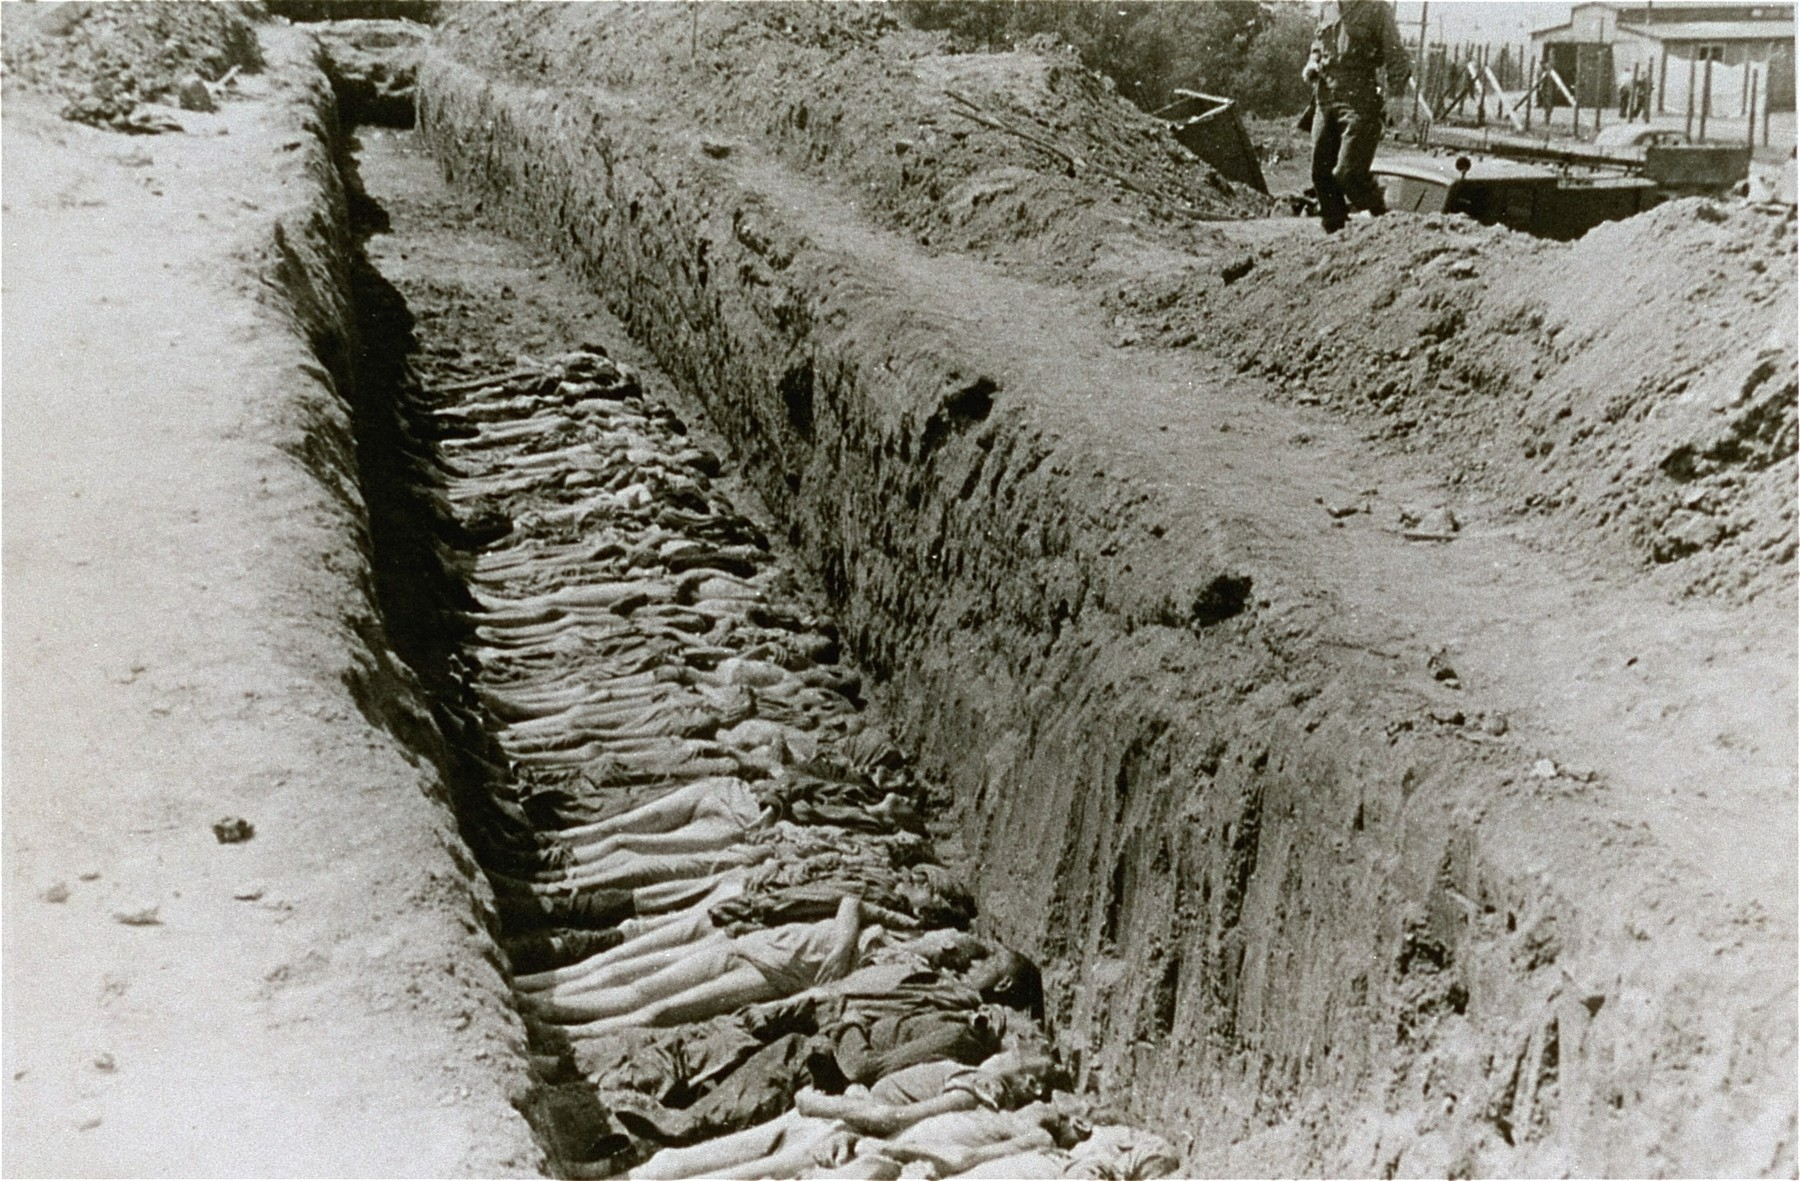 The bodies of former inmates are laid out in a mass grave in the Mauthausen concentration camp.